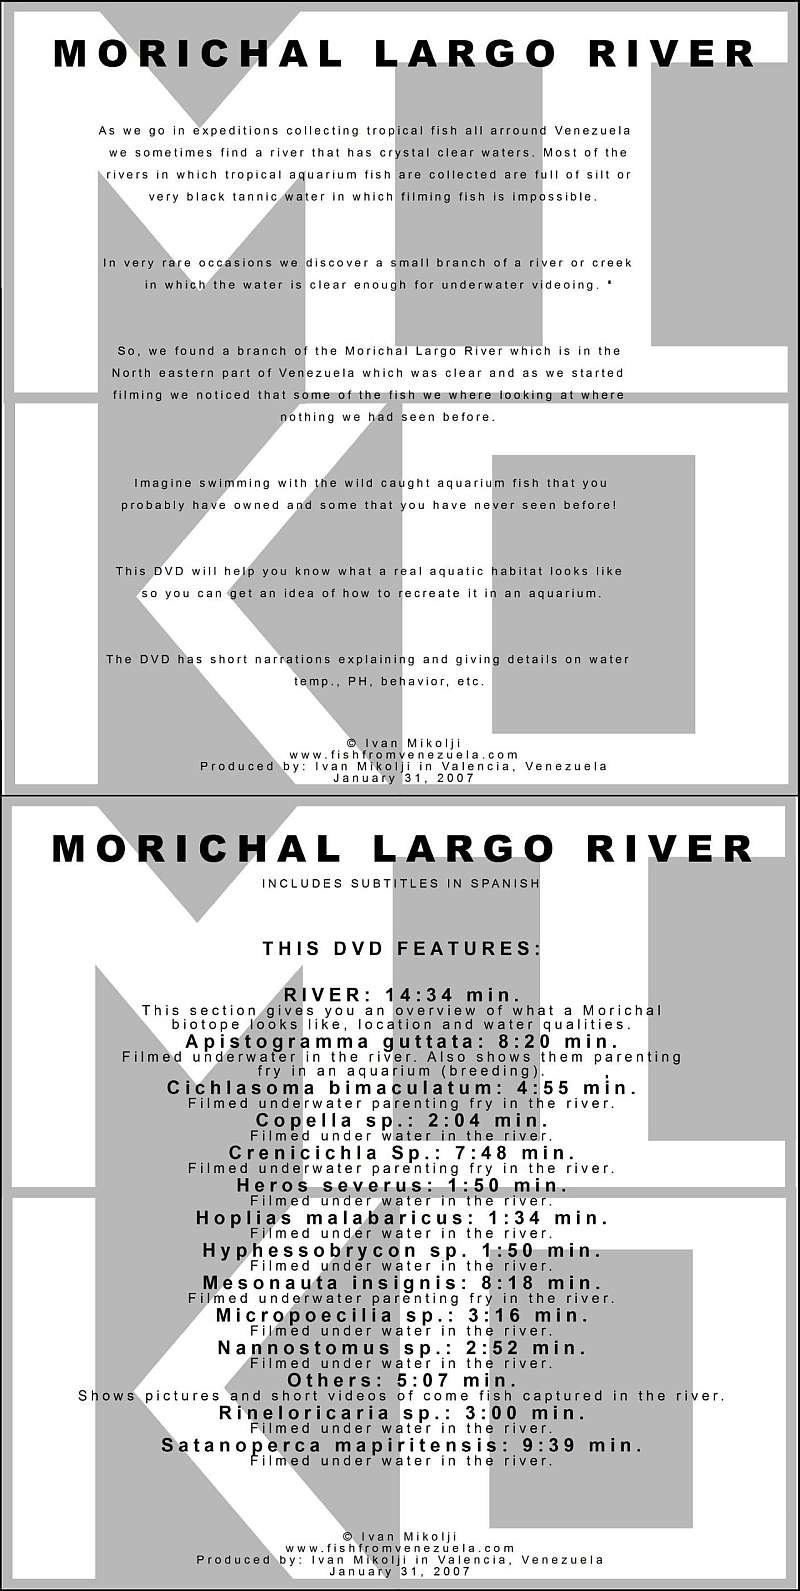 MORICHAL LARGO RIVER DVD COVERS